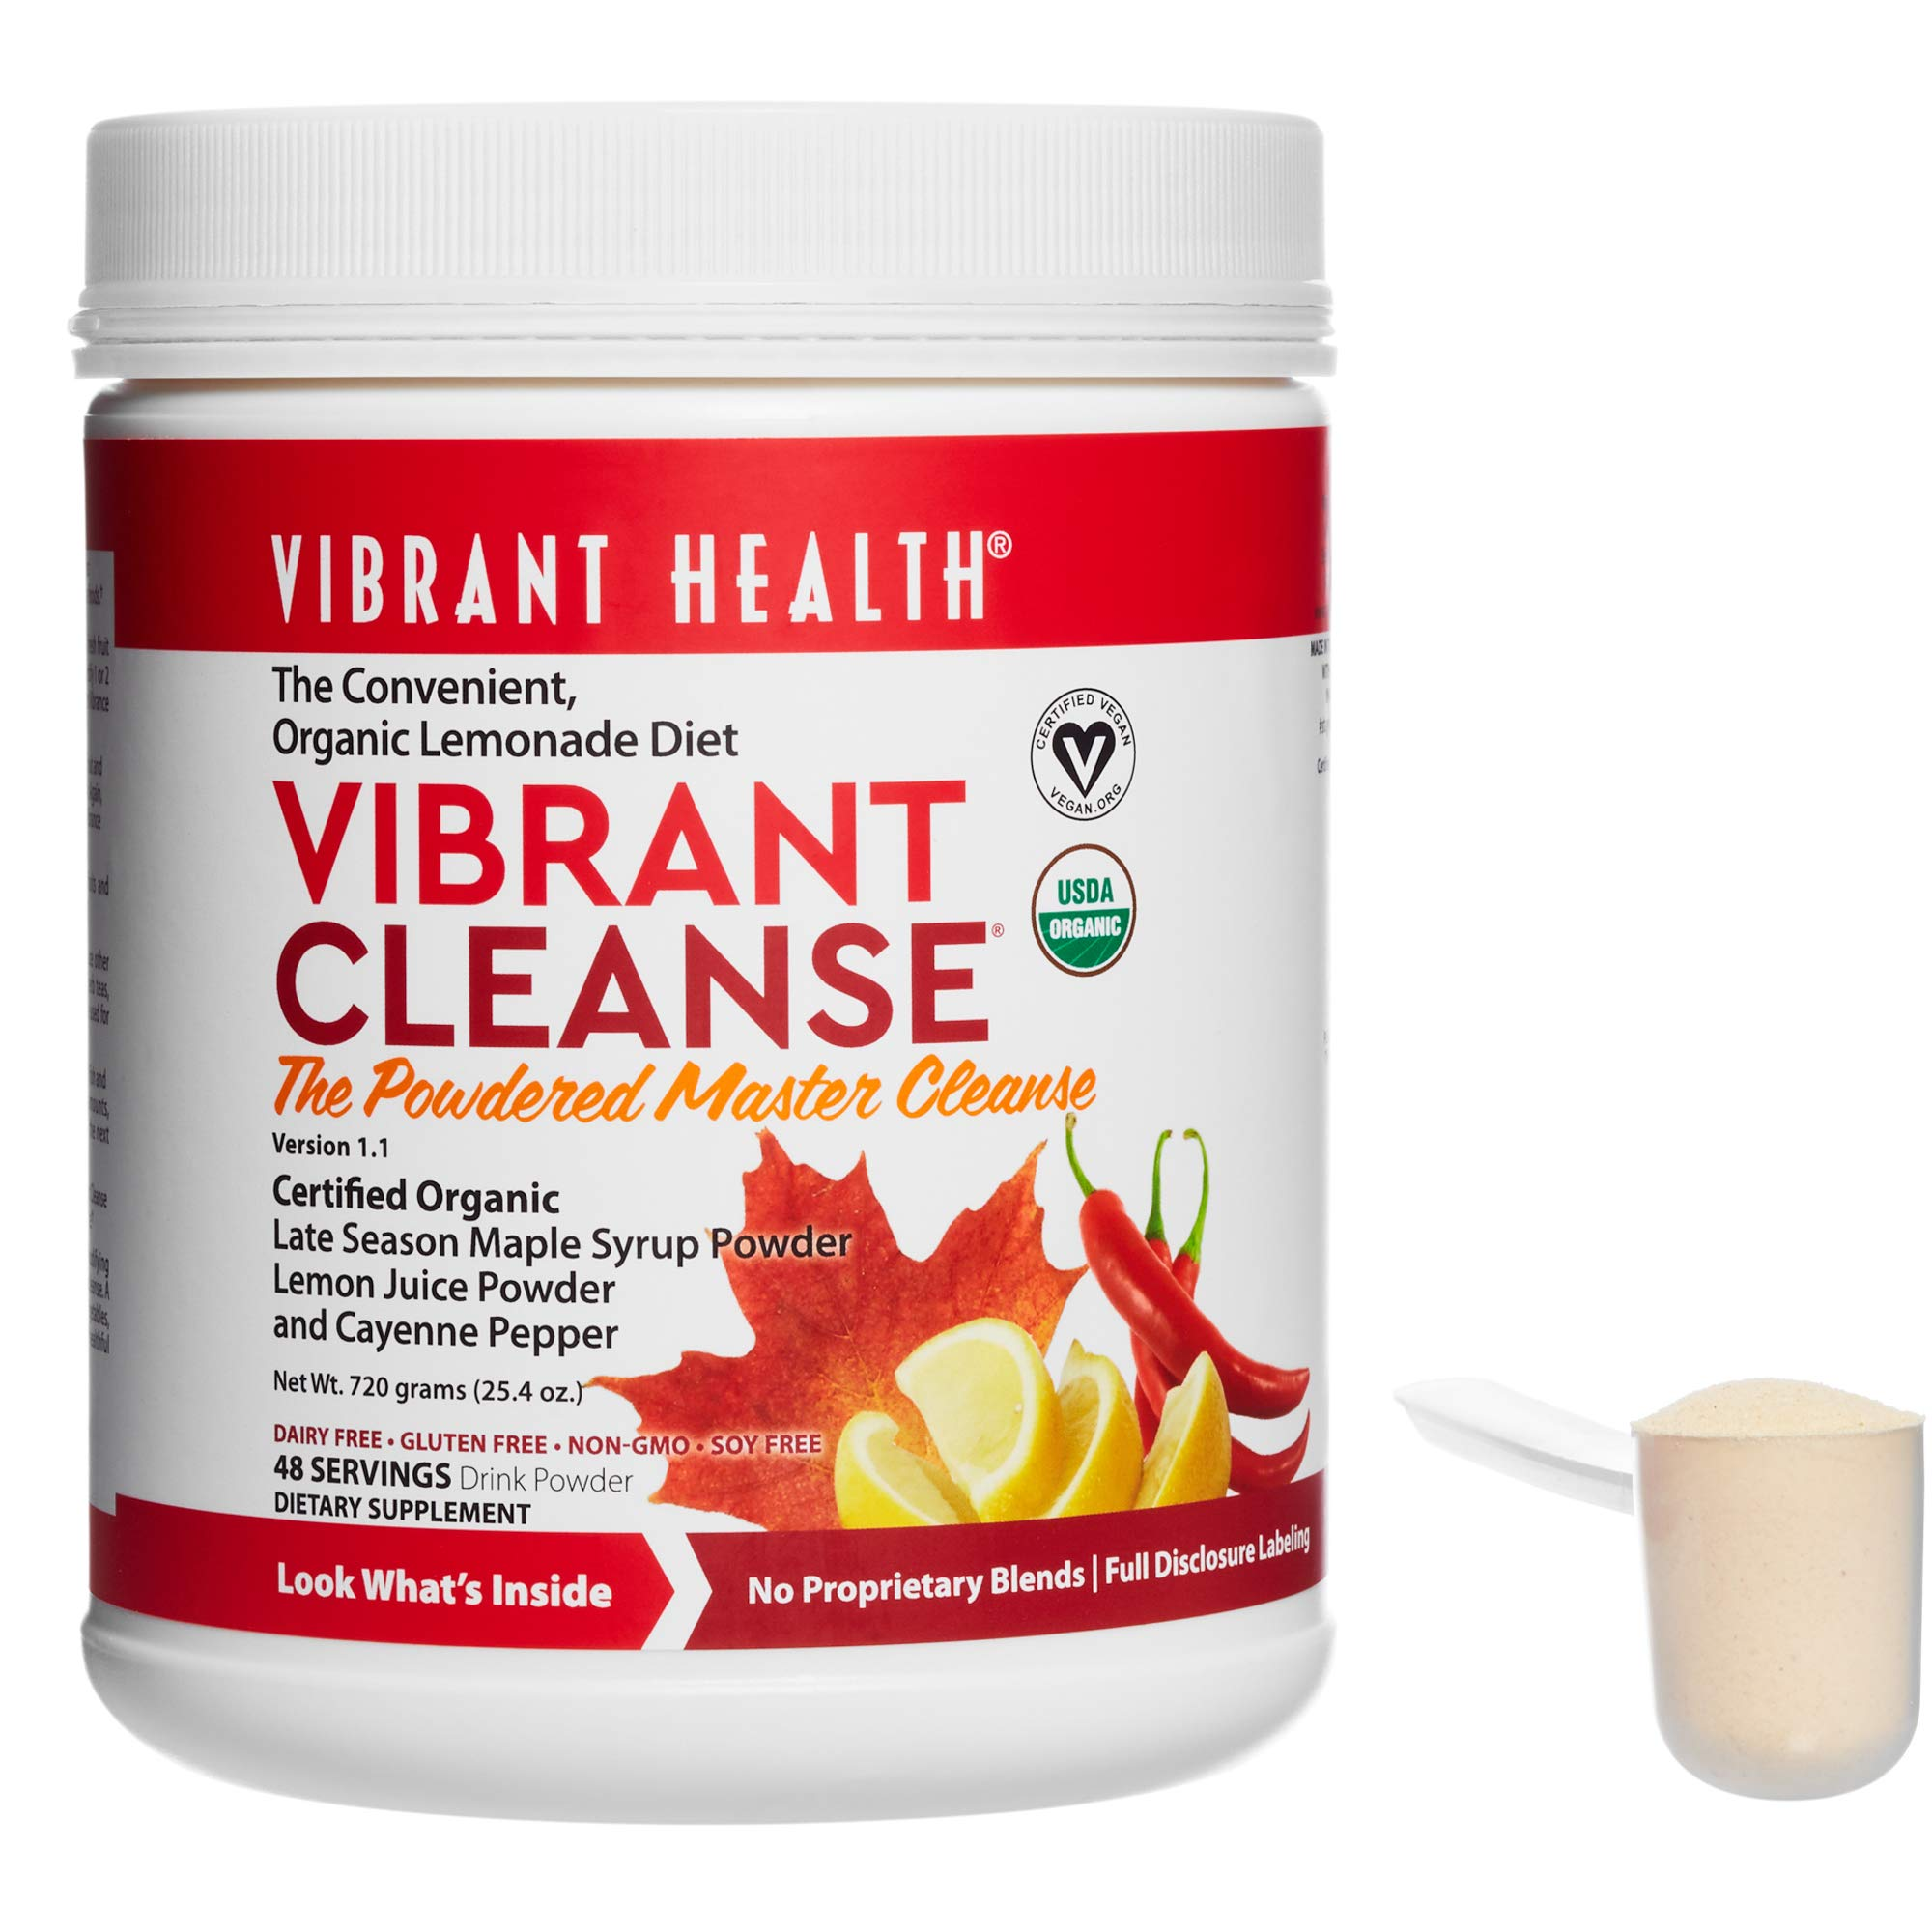 Vibrant Health - Vibrant Cleanse, Powdered Master Cleanse Supports Detoxification to Help Remove Toxins and Waste Naturally with Maple Syrup, Lemon Juice, and Cayenne Pepper, 48 Servings (FFP)